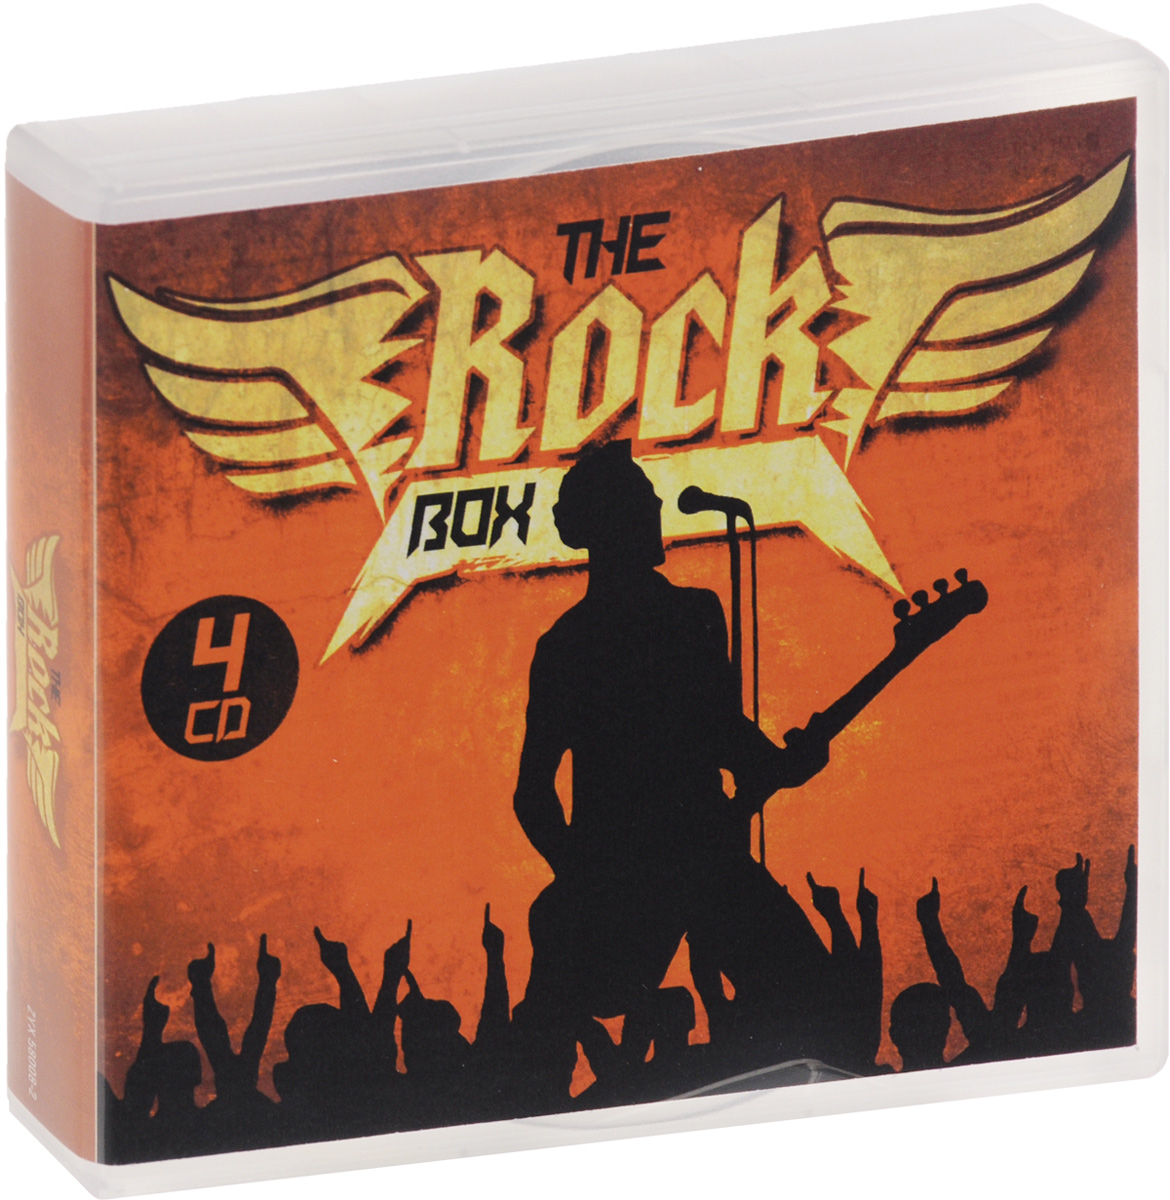 The Rock Box (4 CD)